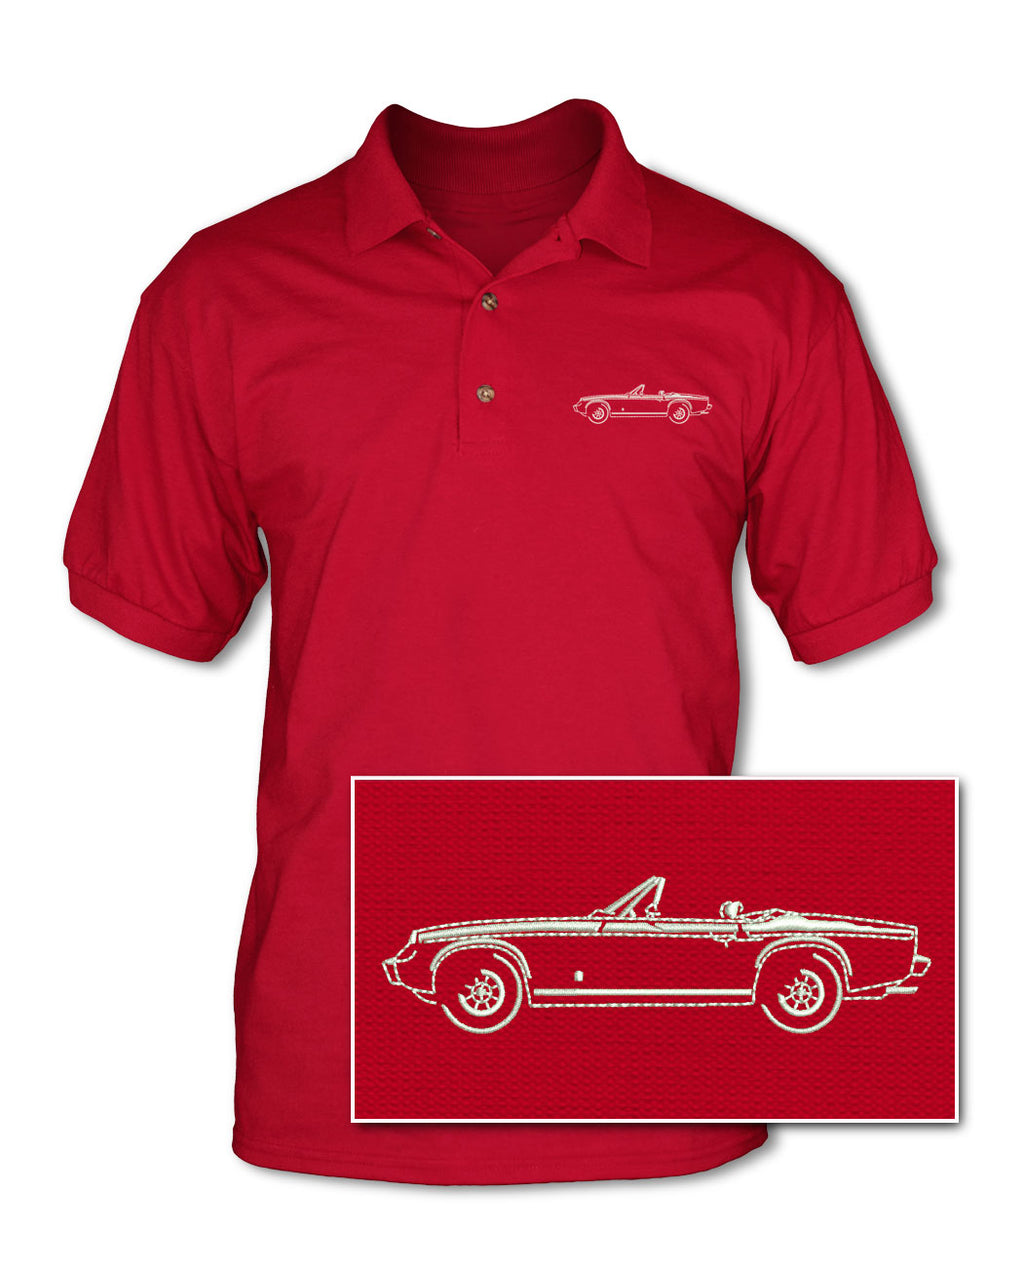 Jensen-Healey Convertible Adult Pique Polo Shirt - Side View